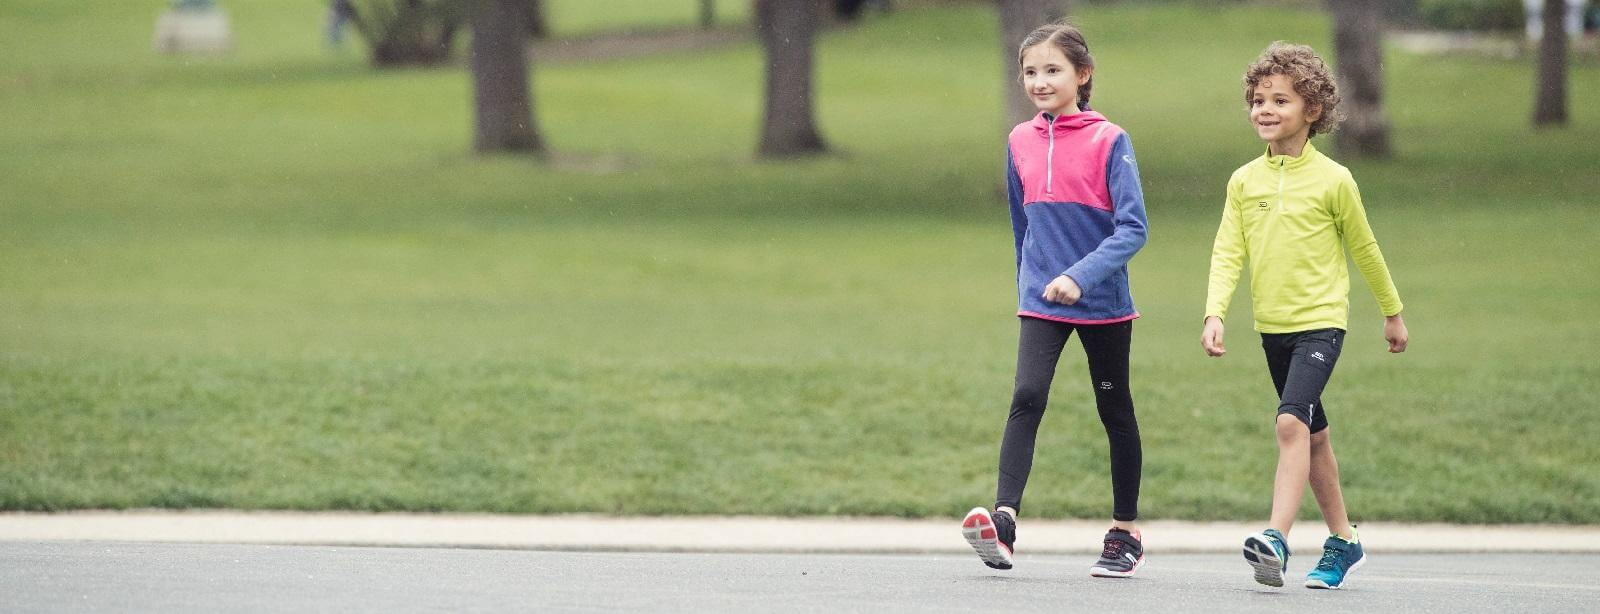 How to Choose Fitness Walking Shoes for your Kids?